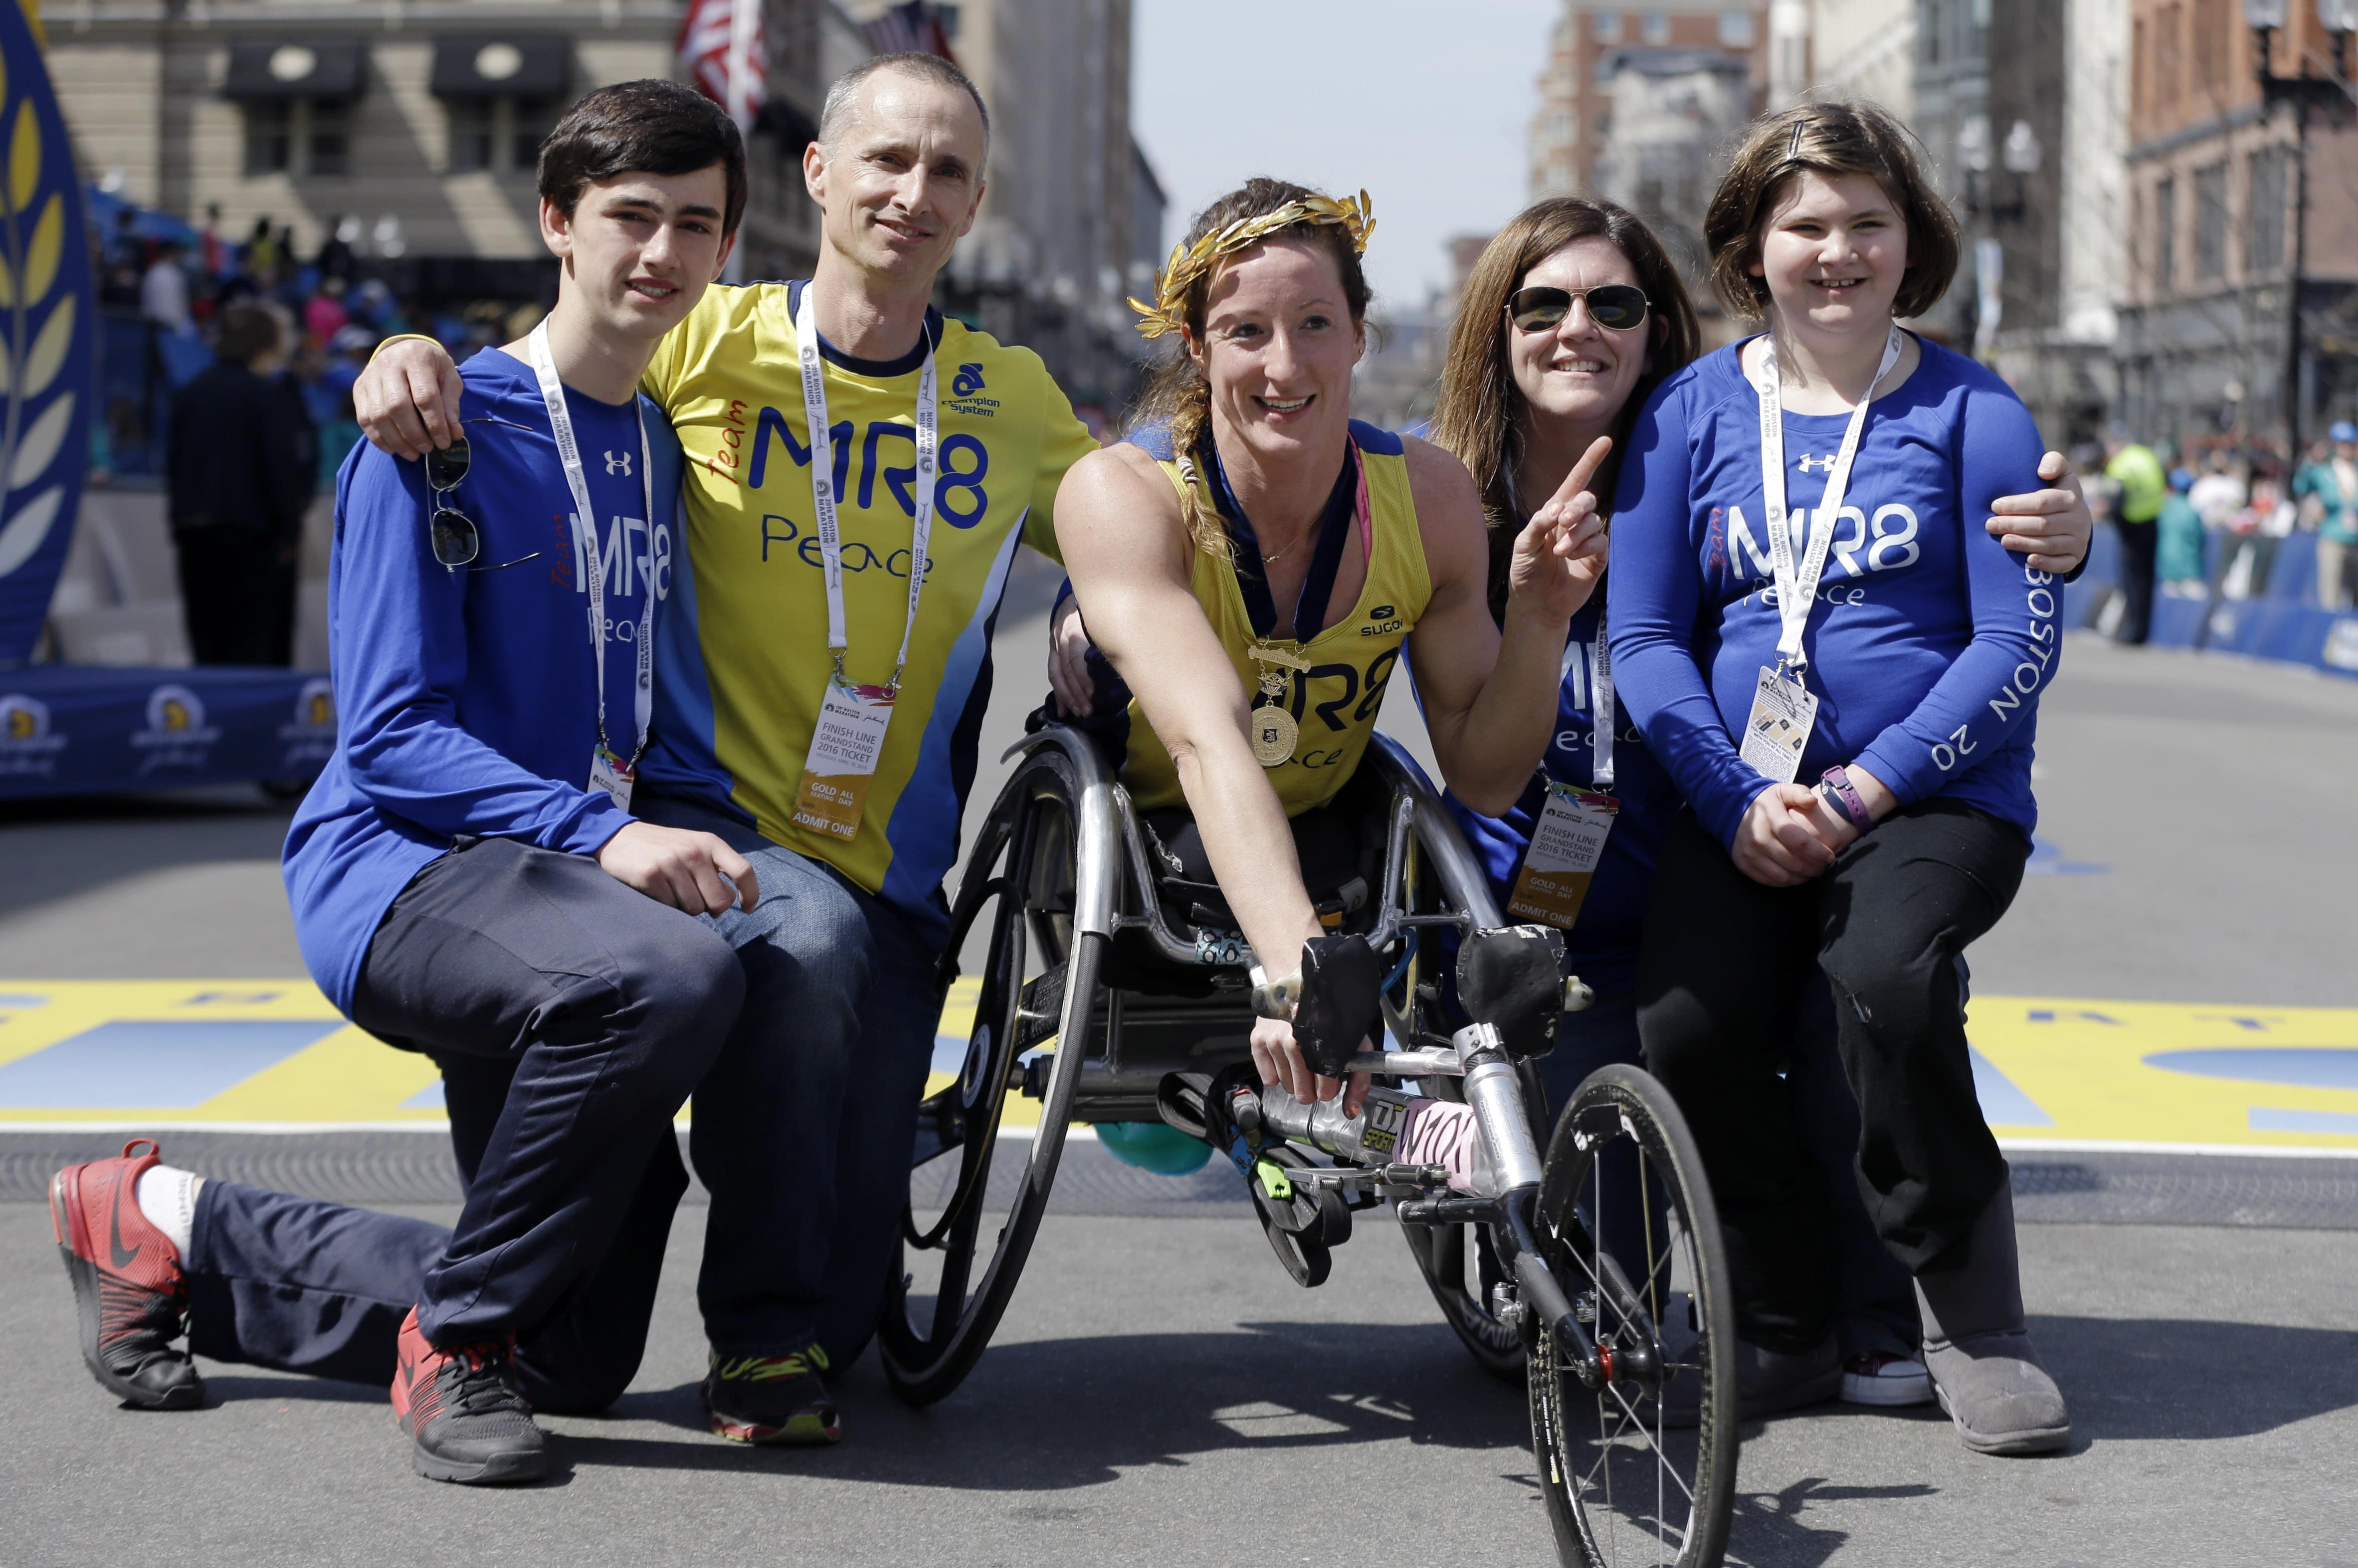 Tatyana McFadden, of Clarksville, Md., center, winner of the women's wheelchair division of the 120th Boston Marathon, poses with the family of 2013 bombing victim Martin Richard, on Monday, April 18, 2016, in Boston. From left Henry and Bill Ri